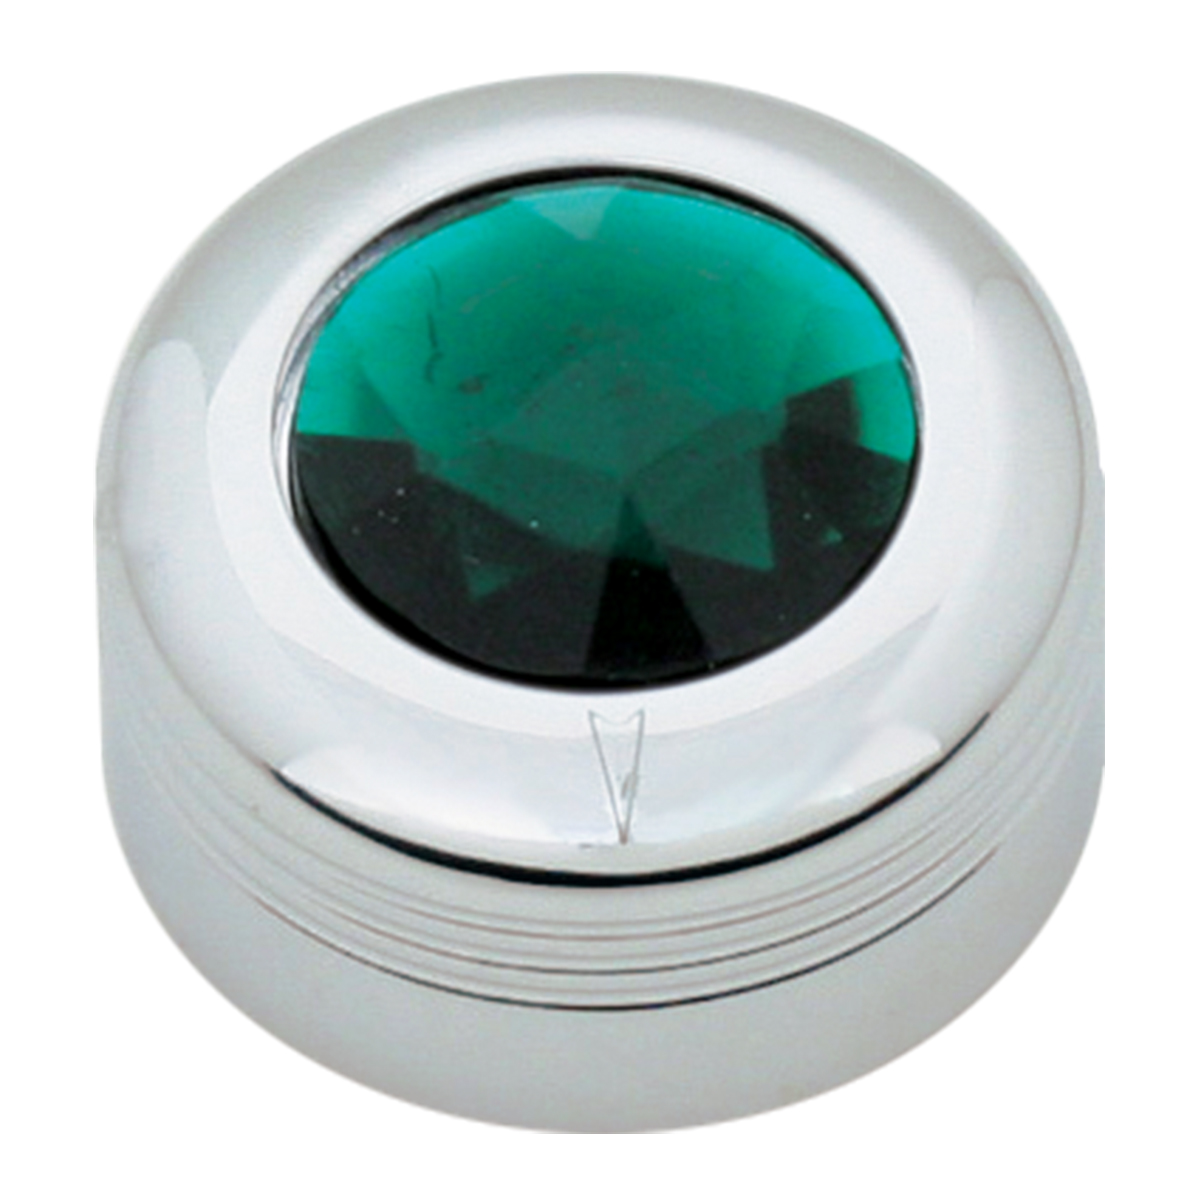 Chrome Plastic A/C Knob w/ Green Plastic Crystal for Pete